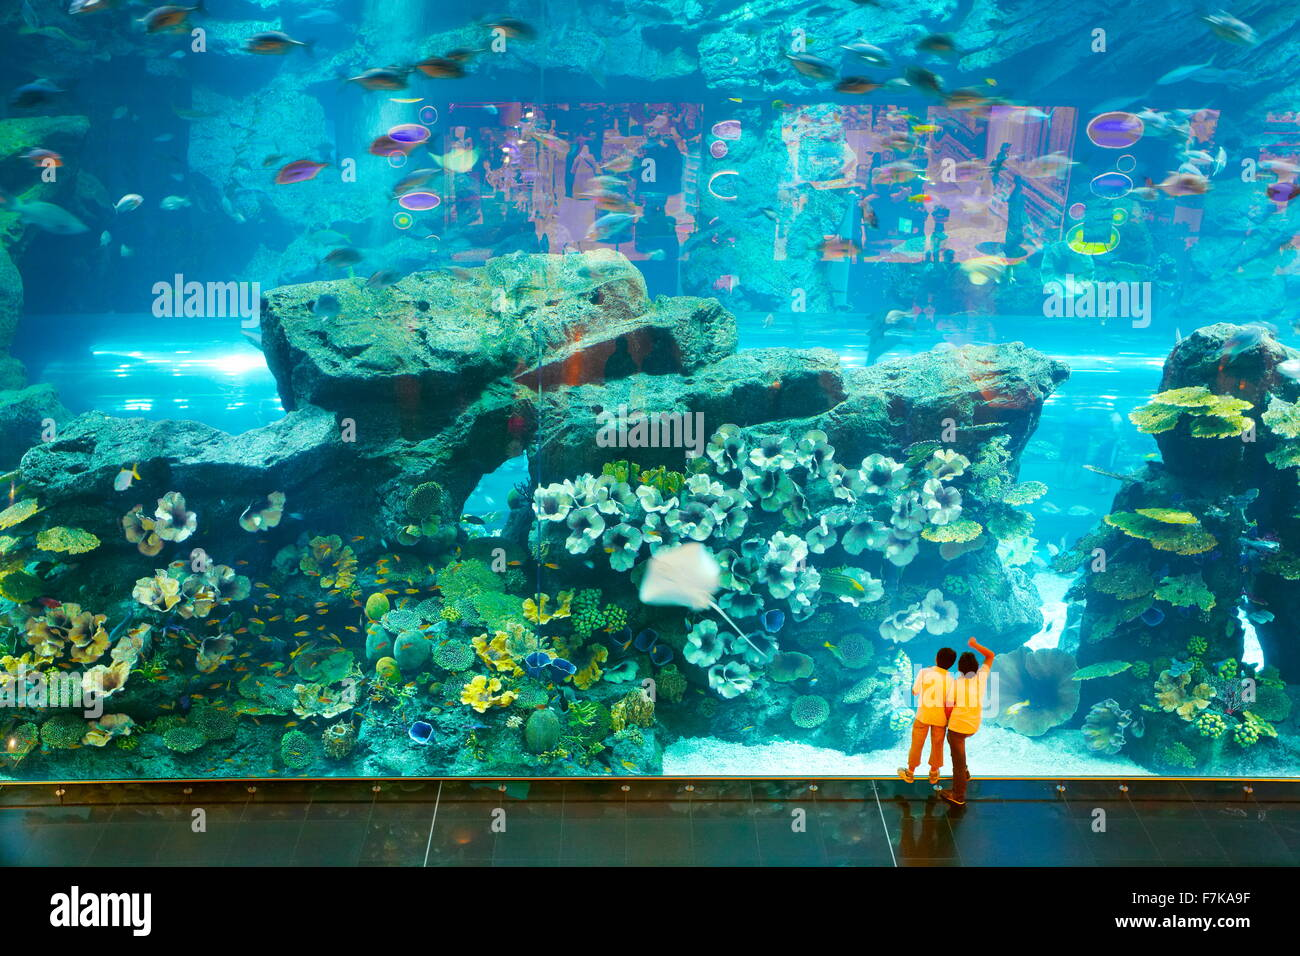 Children looking at underwater world in the Dubai Mall Aquarium, Dubai, United Arab Emirates - Stock Image